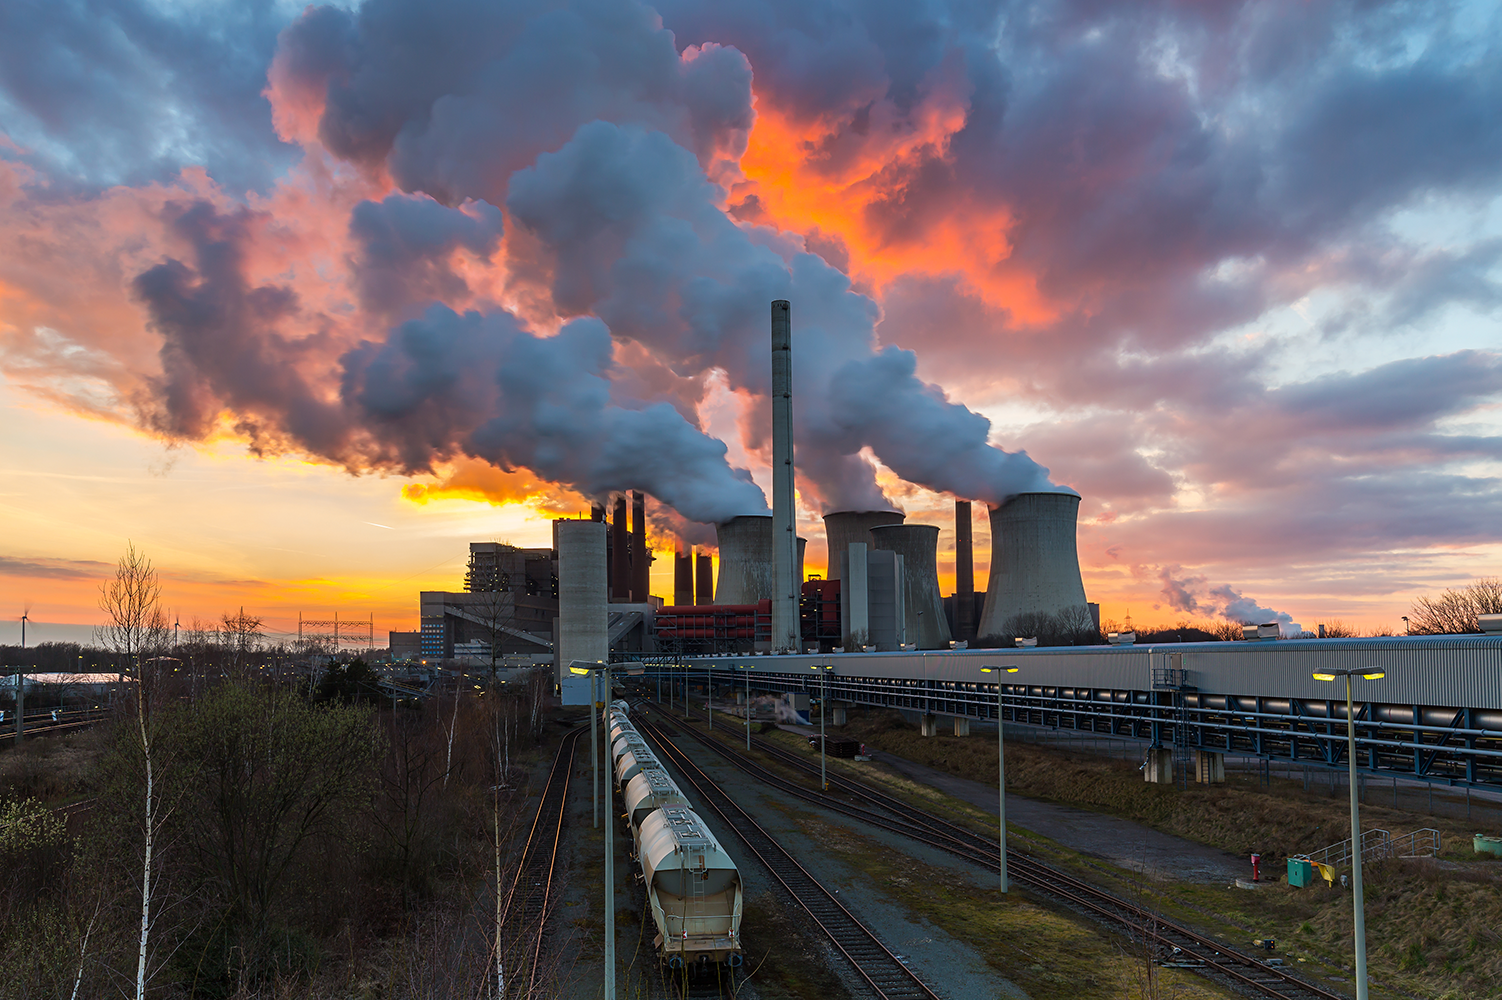 Lignite Power Plant at sunset with cloudy sky in Neurath, Germany.